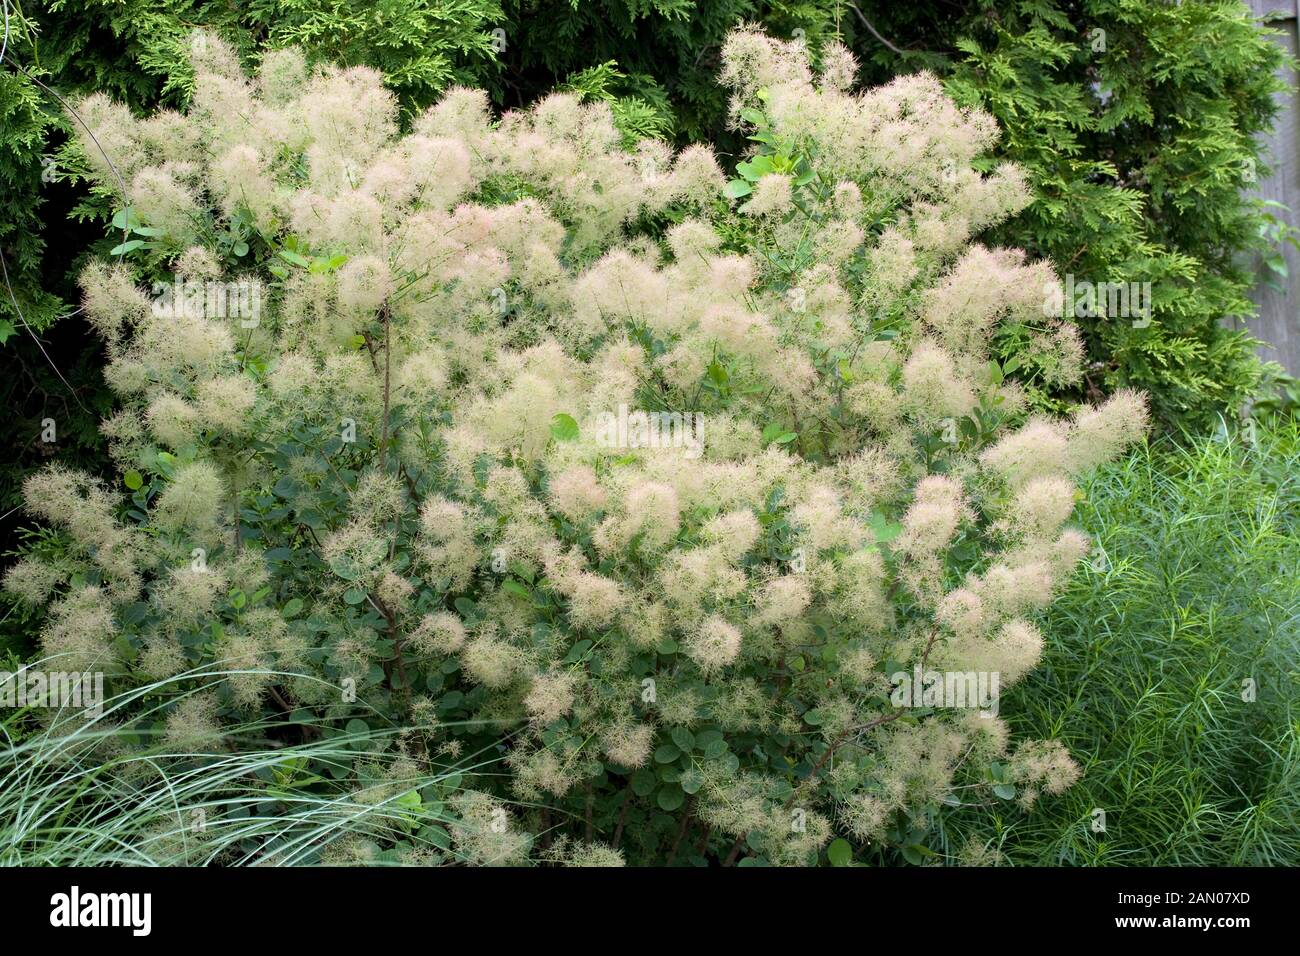 Parrucche verde arbusto Young Lady 80-100cm Cotinus COGGYGRIA